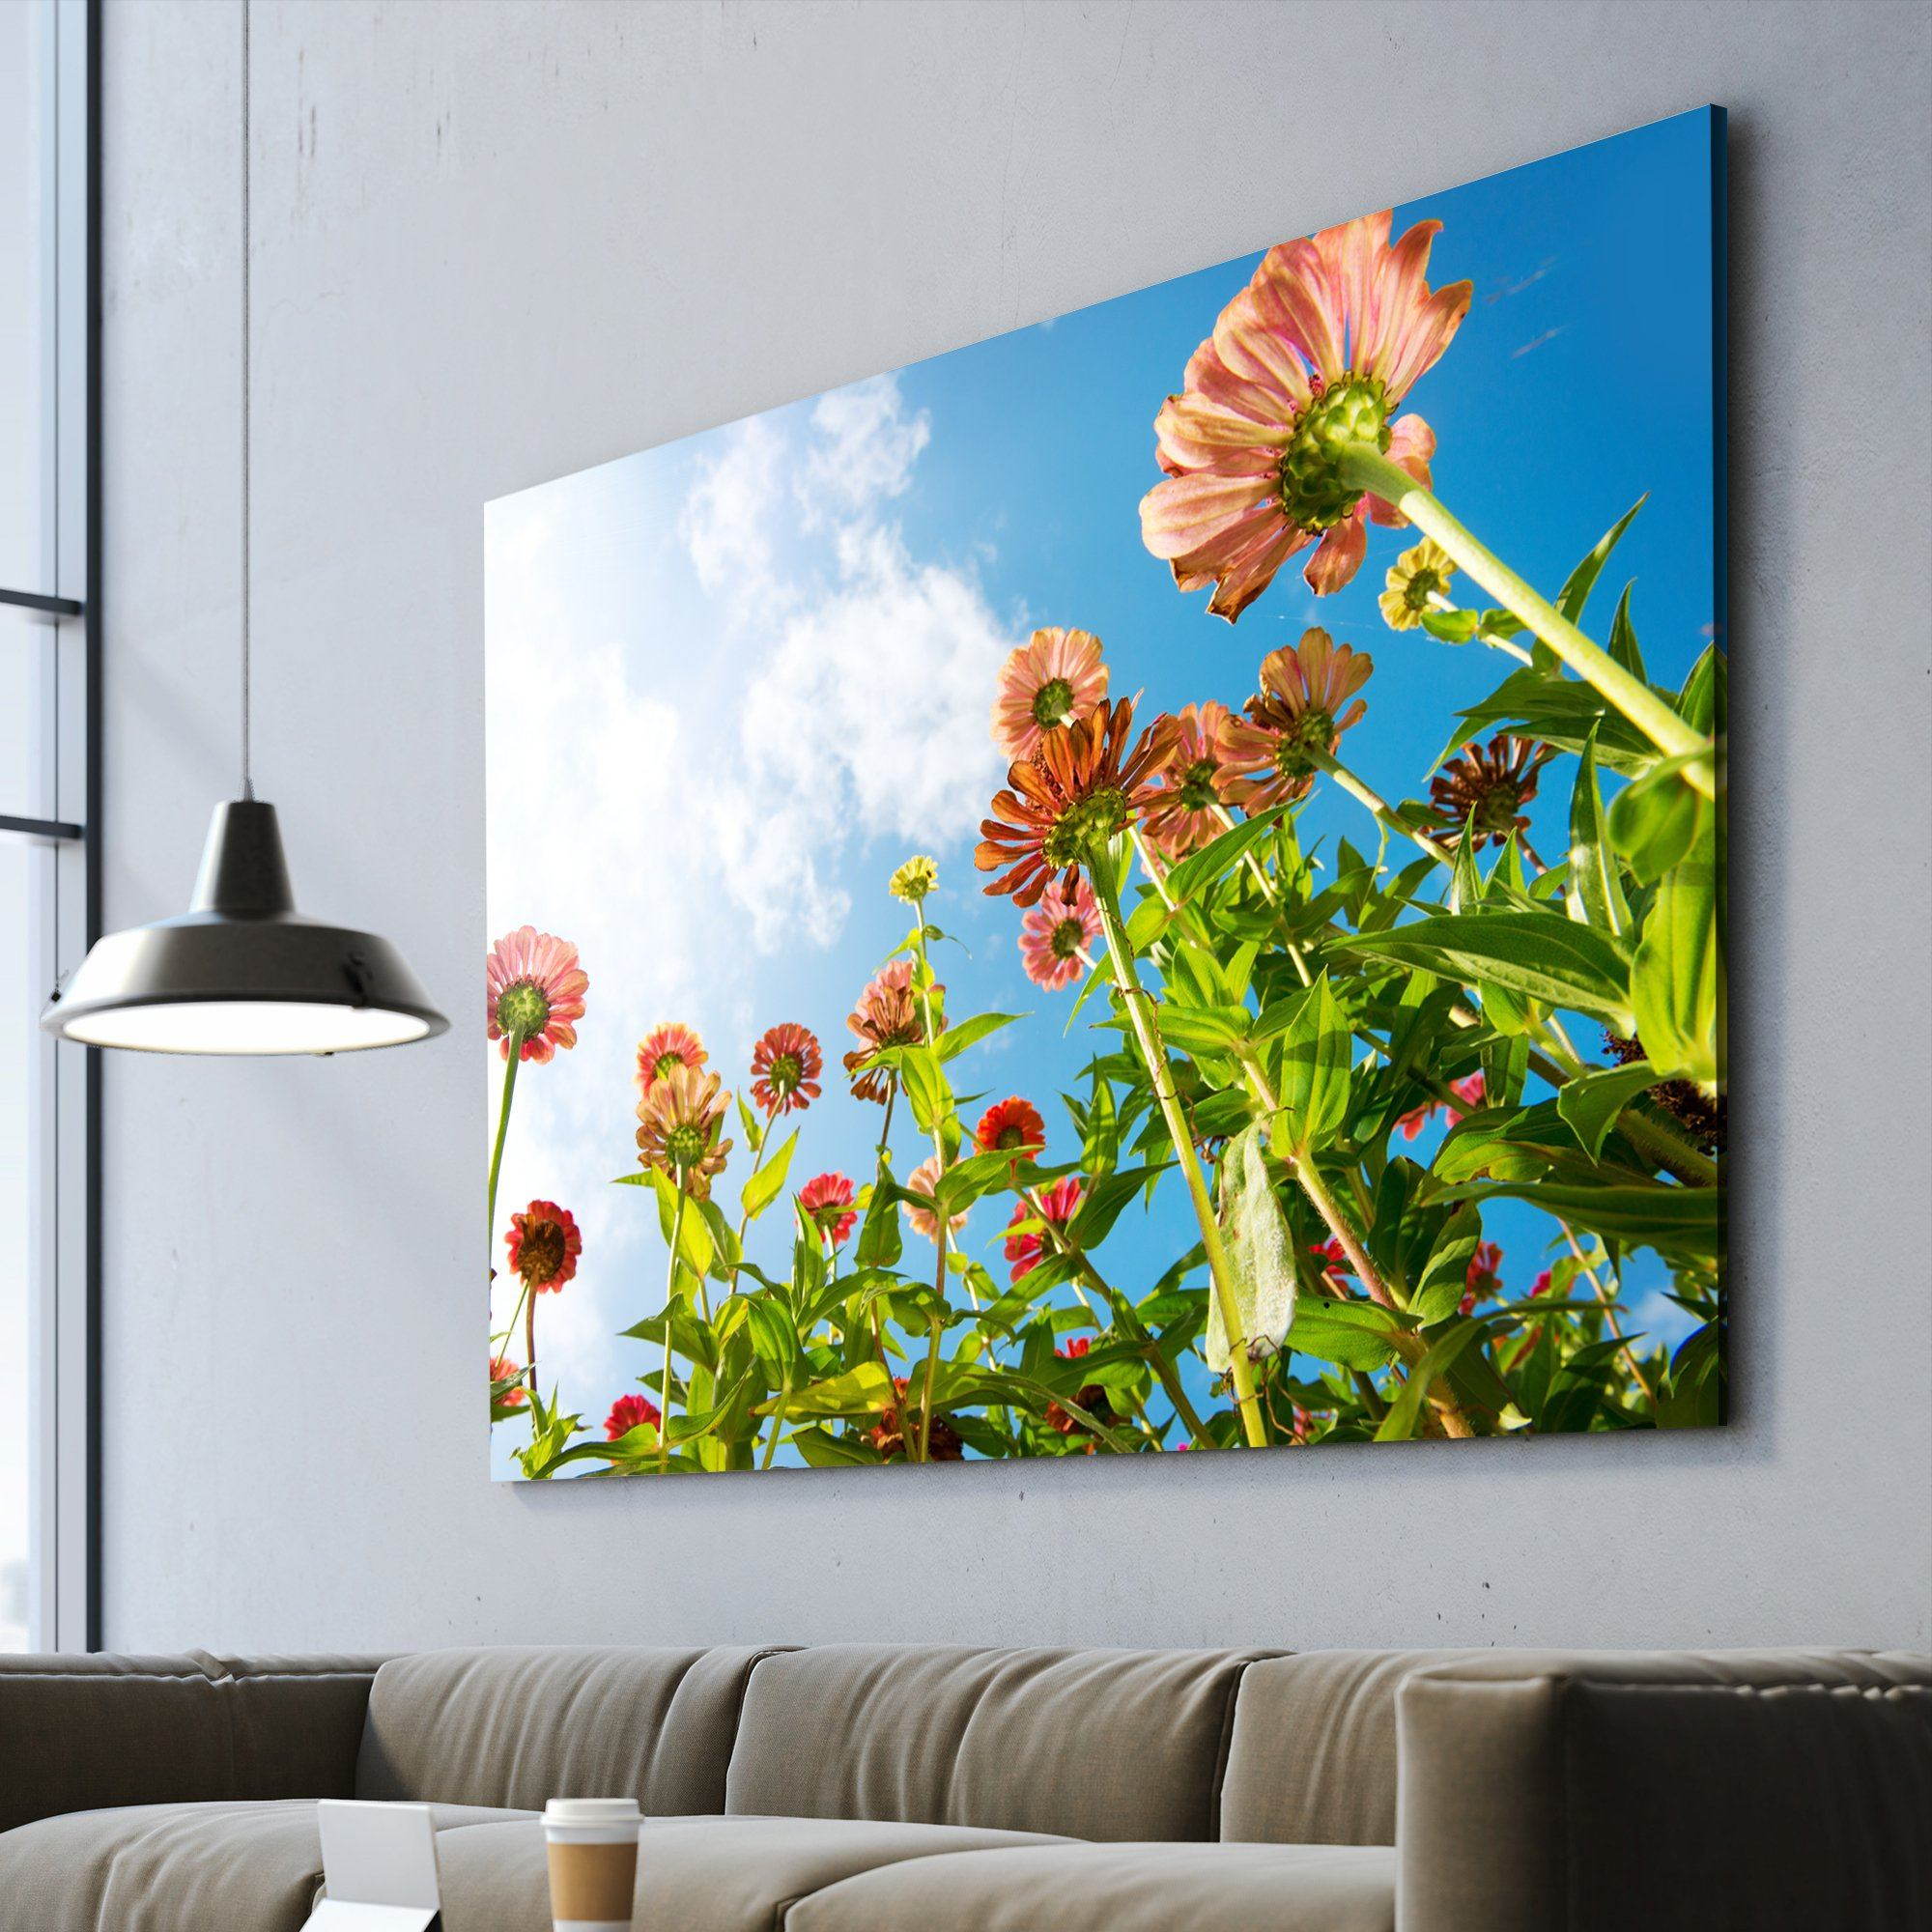 Flowers wall art black frame